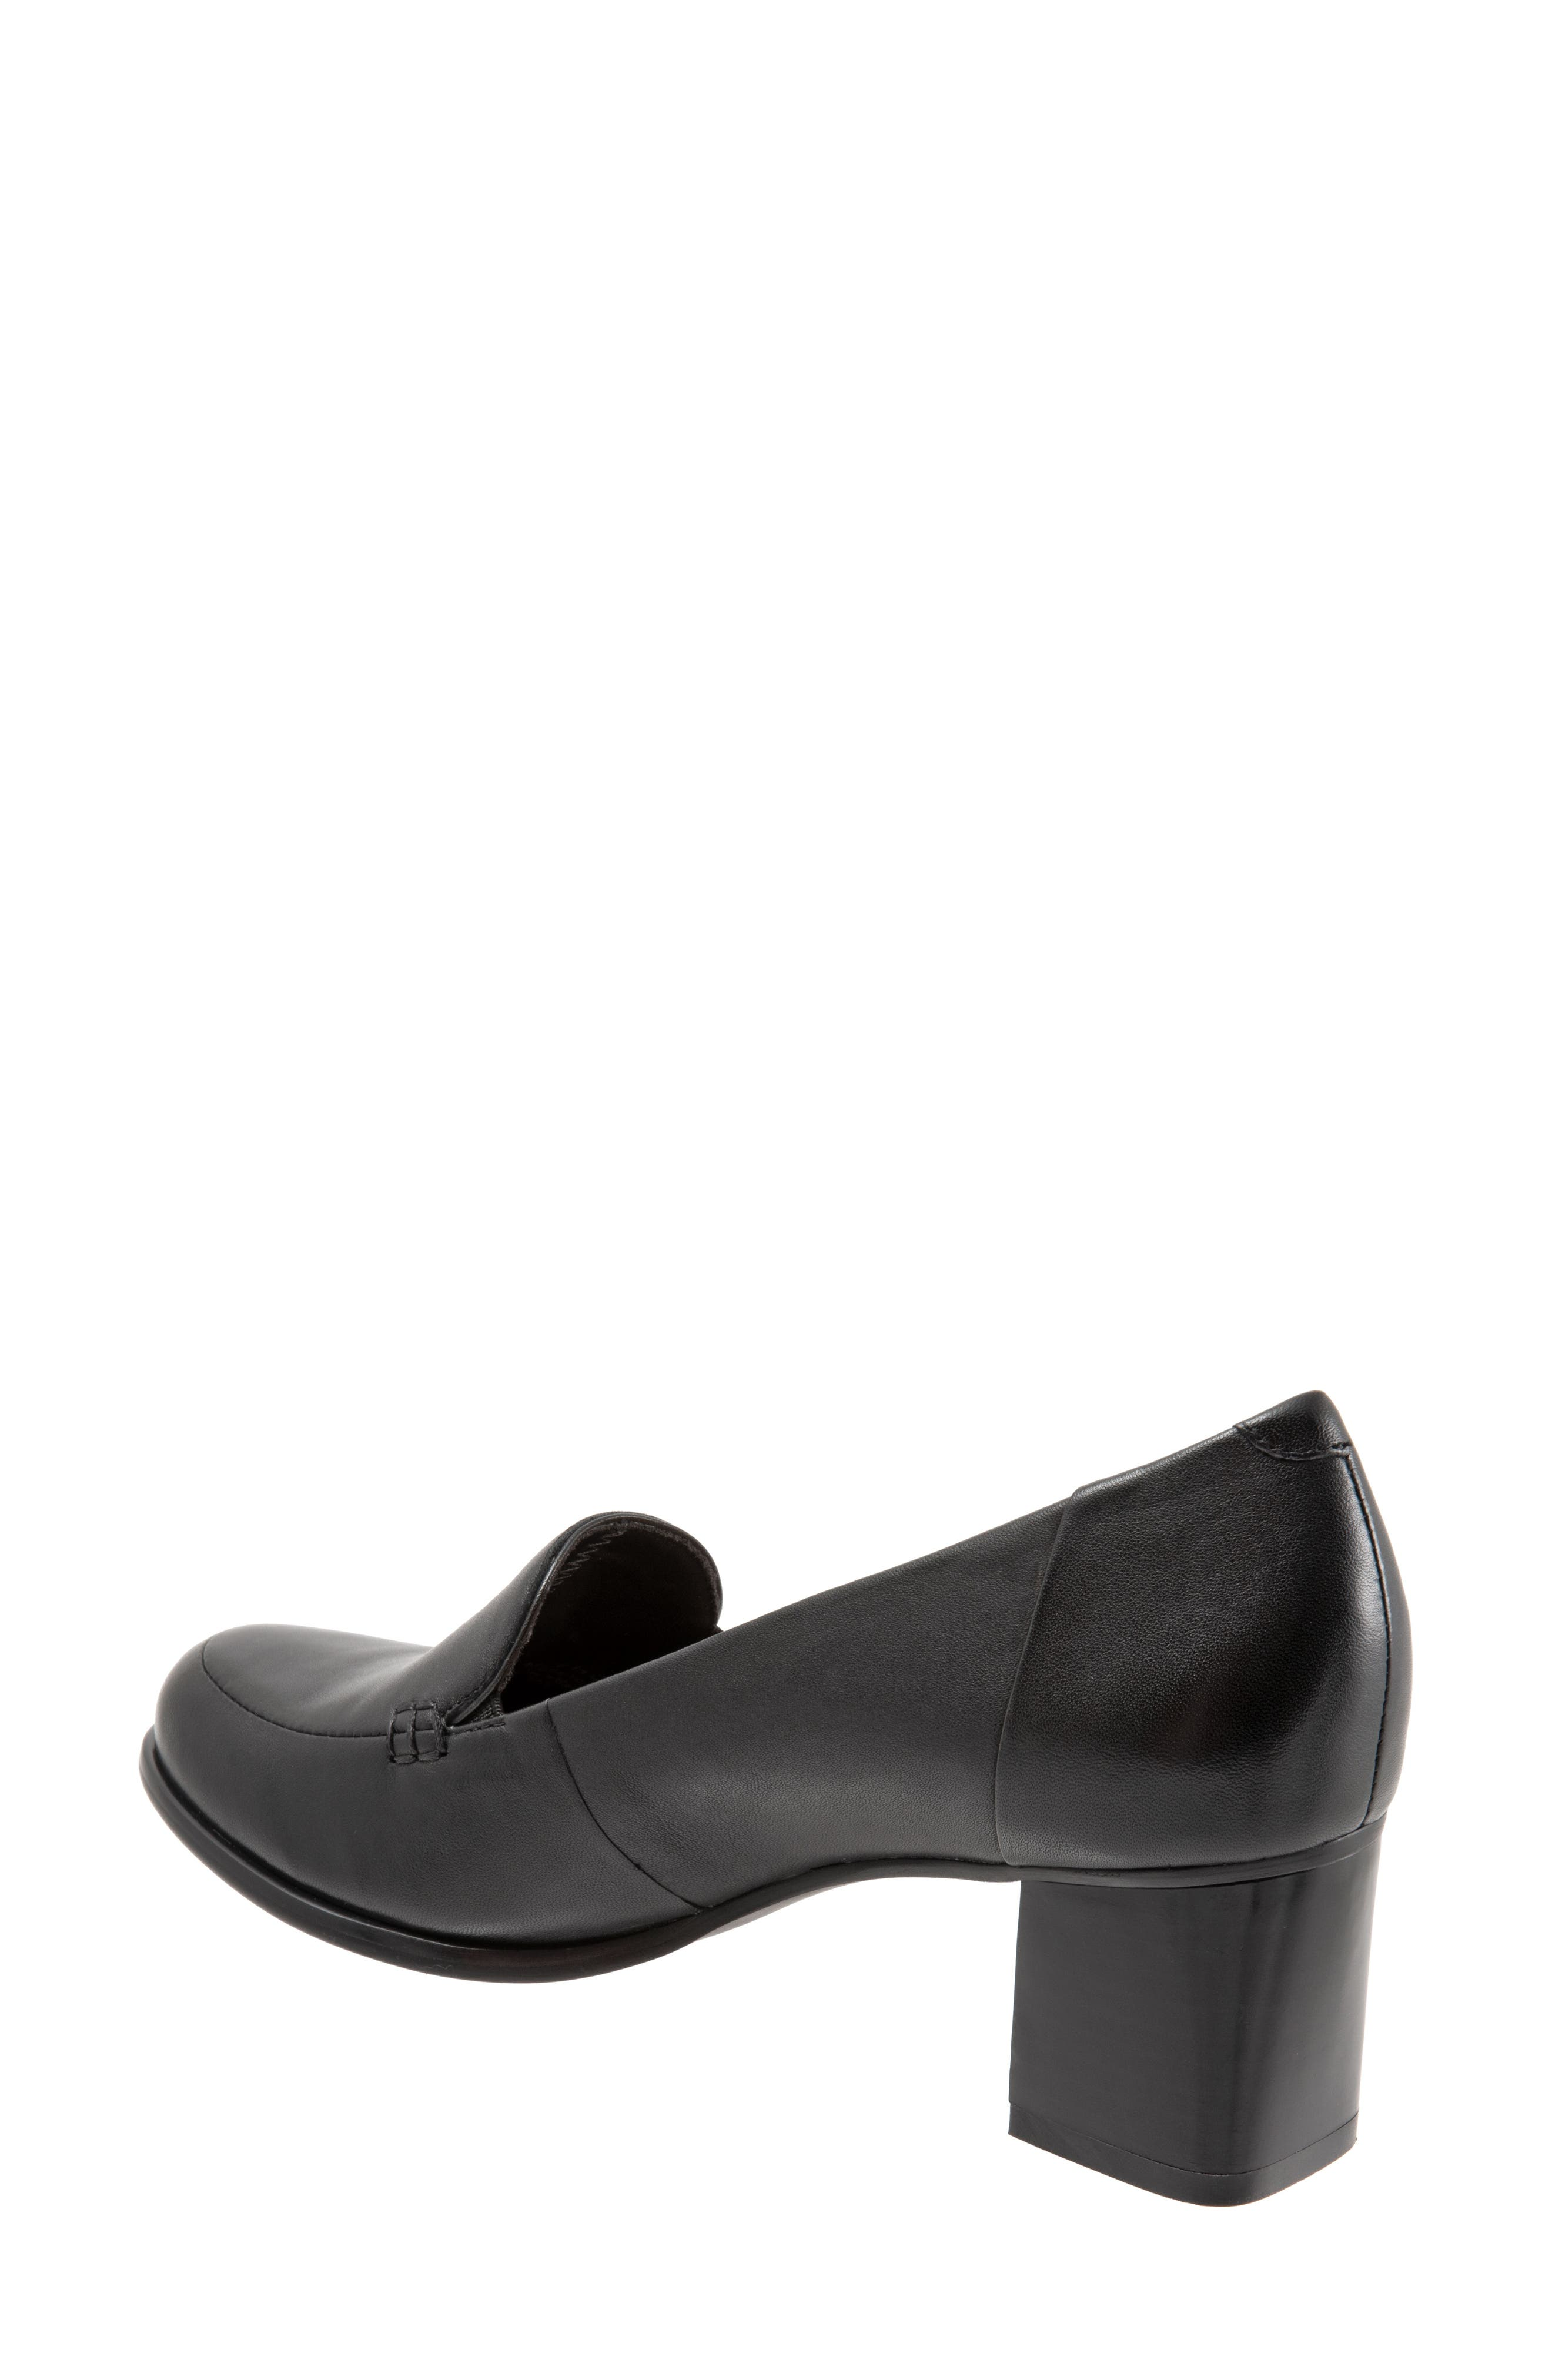 TROTTERS, Quincy Loafer Pump, Alternate thumbnail 2, color, BLACK LEATHER